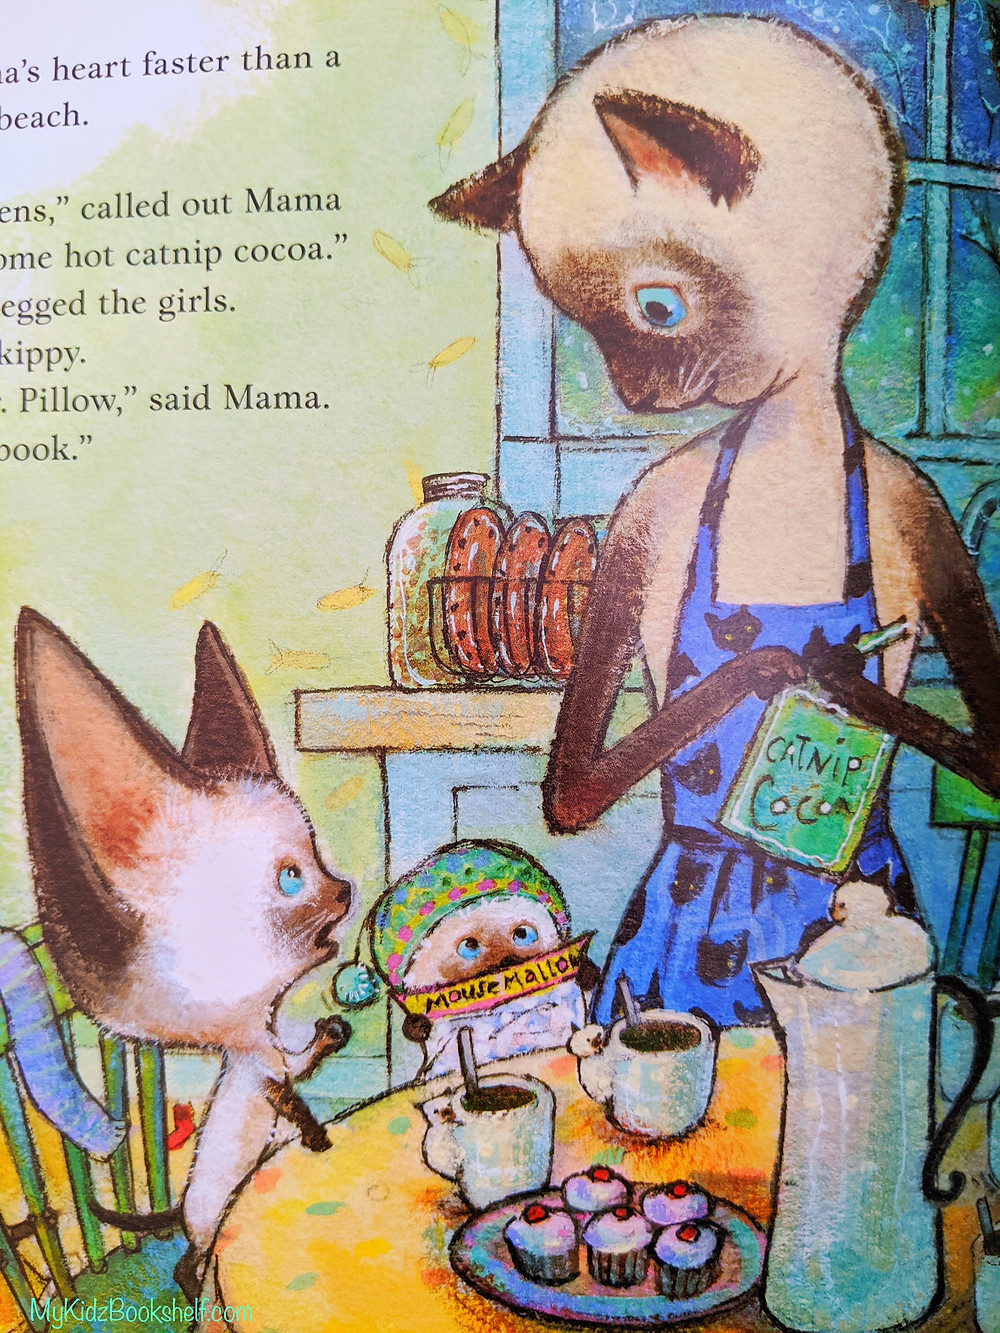 Skippy Jon Jones illustration shows Mama JuneBug Jones standing at kitchen table looking down at her Siamese cat son